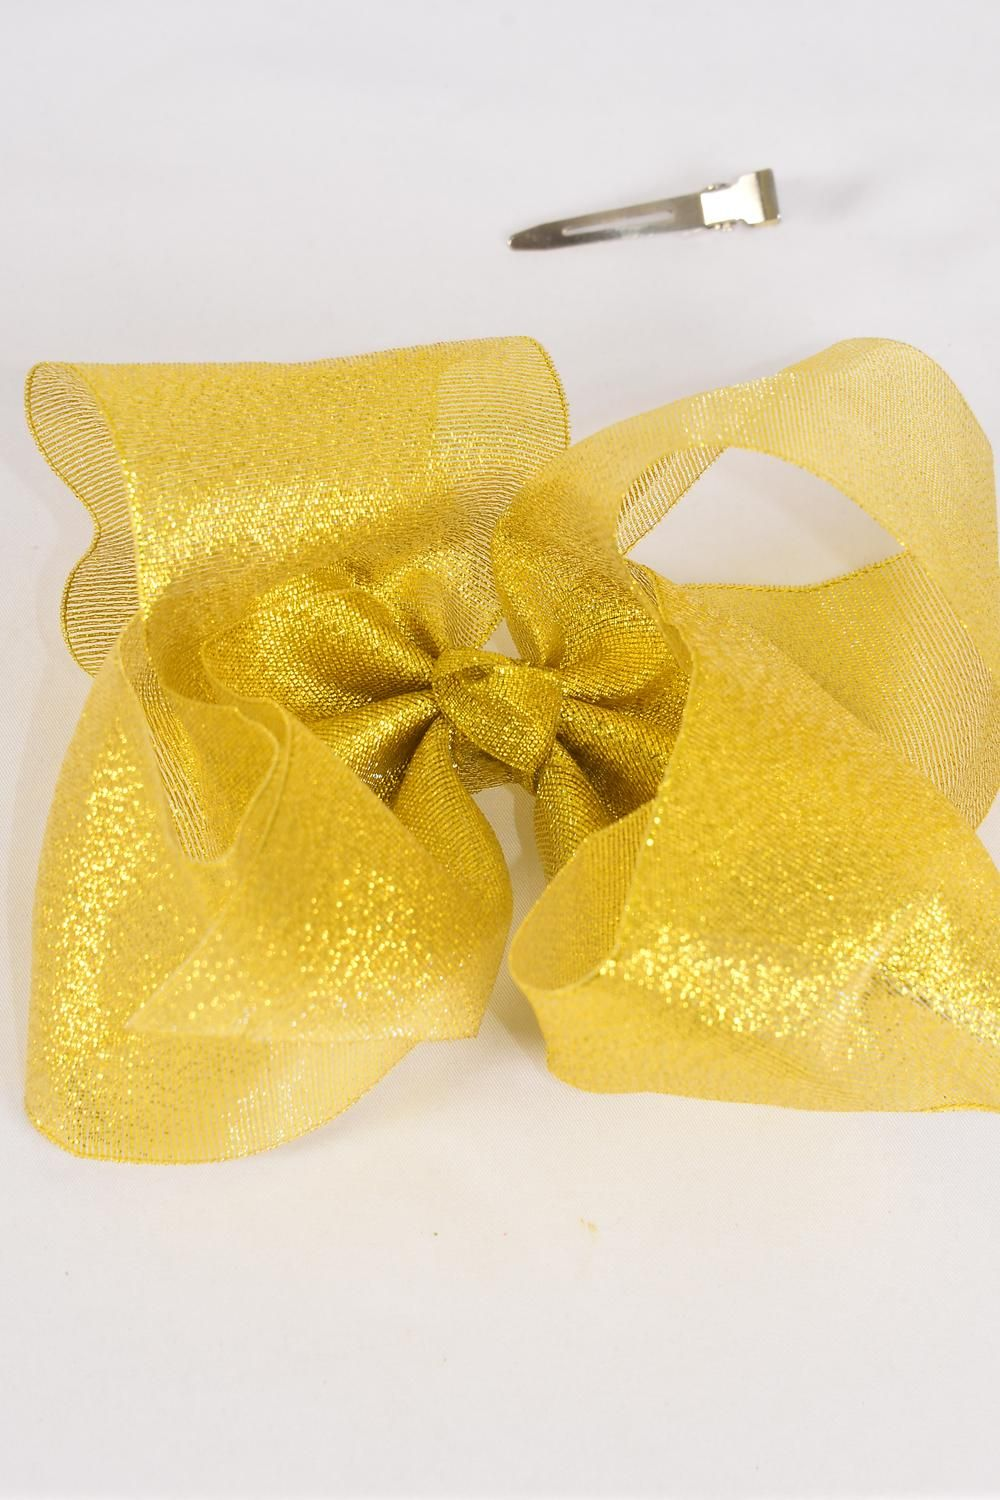 "Hair Bow Jumbo Cheer Type Bow Metallic Gold/DZ **Gold** Alligator Clip,Size-8""x 7"" Wide,Clip Strip & UPC Code"